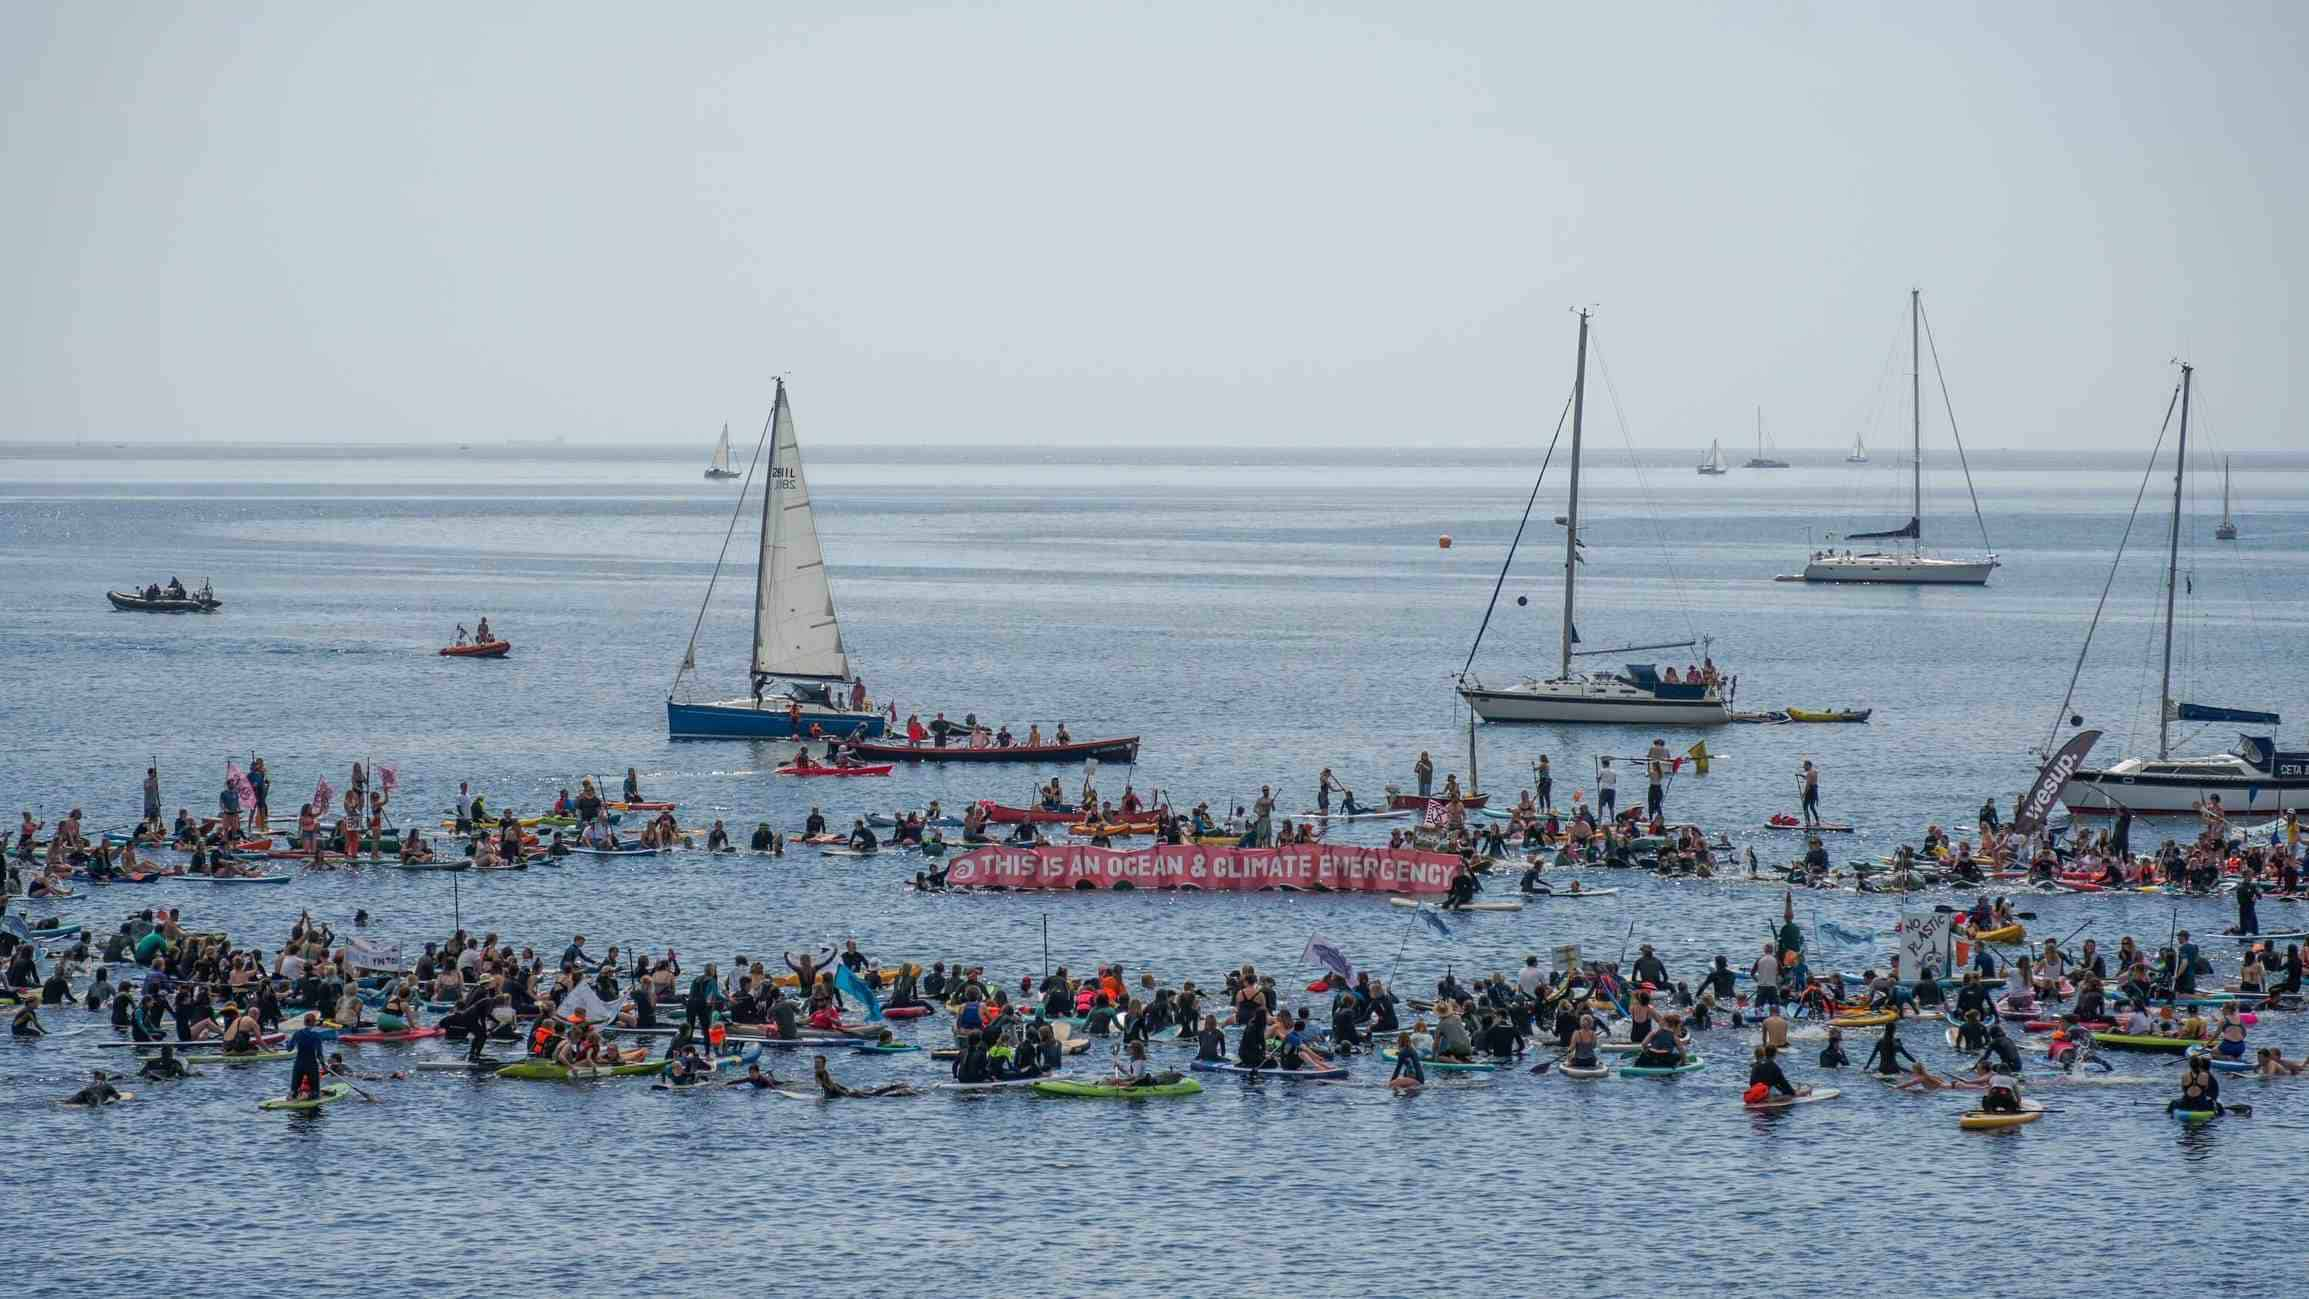 Wide-angle shot showing hundreds of people in a blue-grey sea. They have formed a ring, and in the centre of the ring protesters hold a long red banner that reads 'This is an ocean &climate emergency' alongside the SAS logo. Various yachts are dotted in the background.